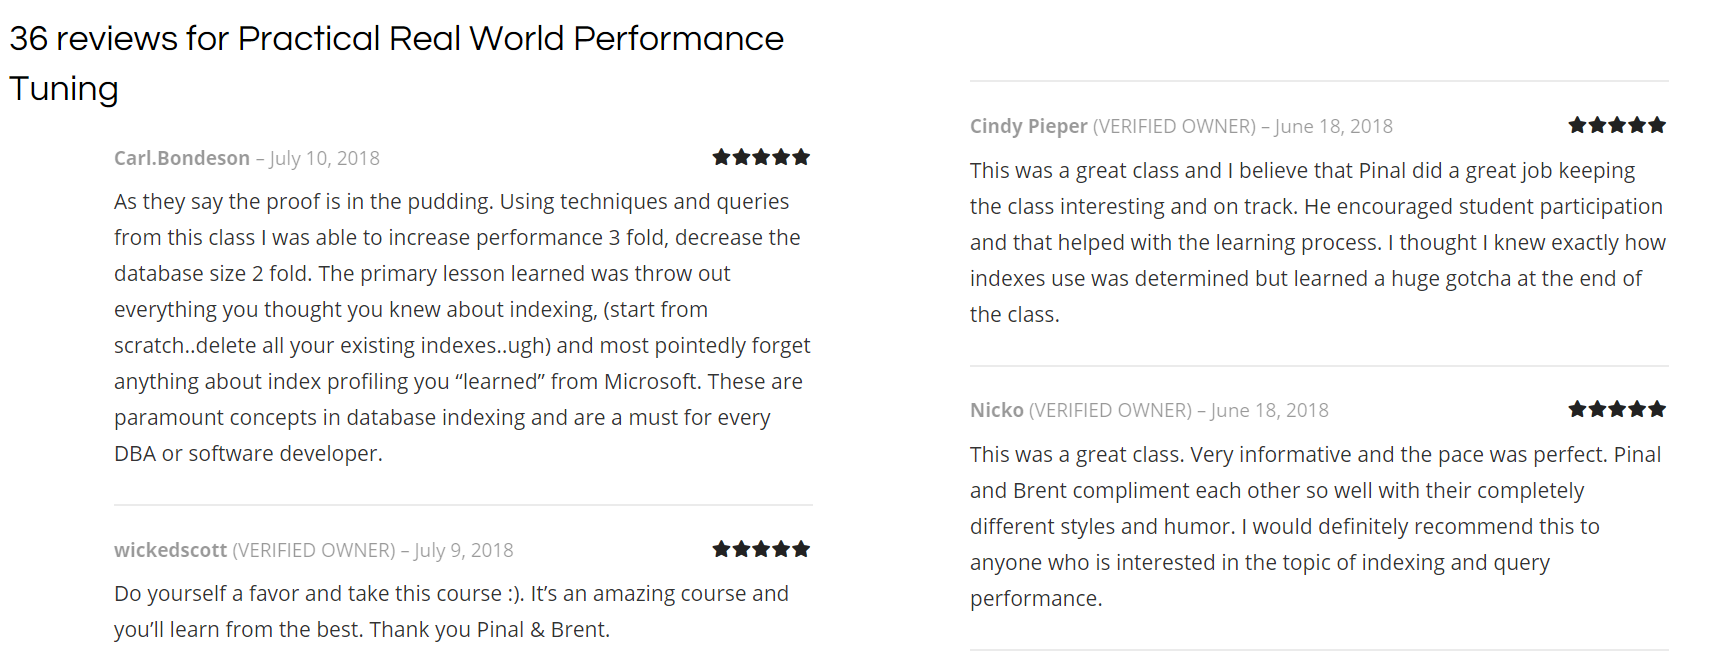 Practical Real World Performance Tuning - Class Preparation and Setup reviews